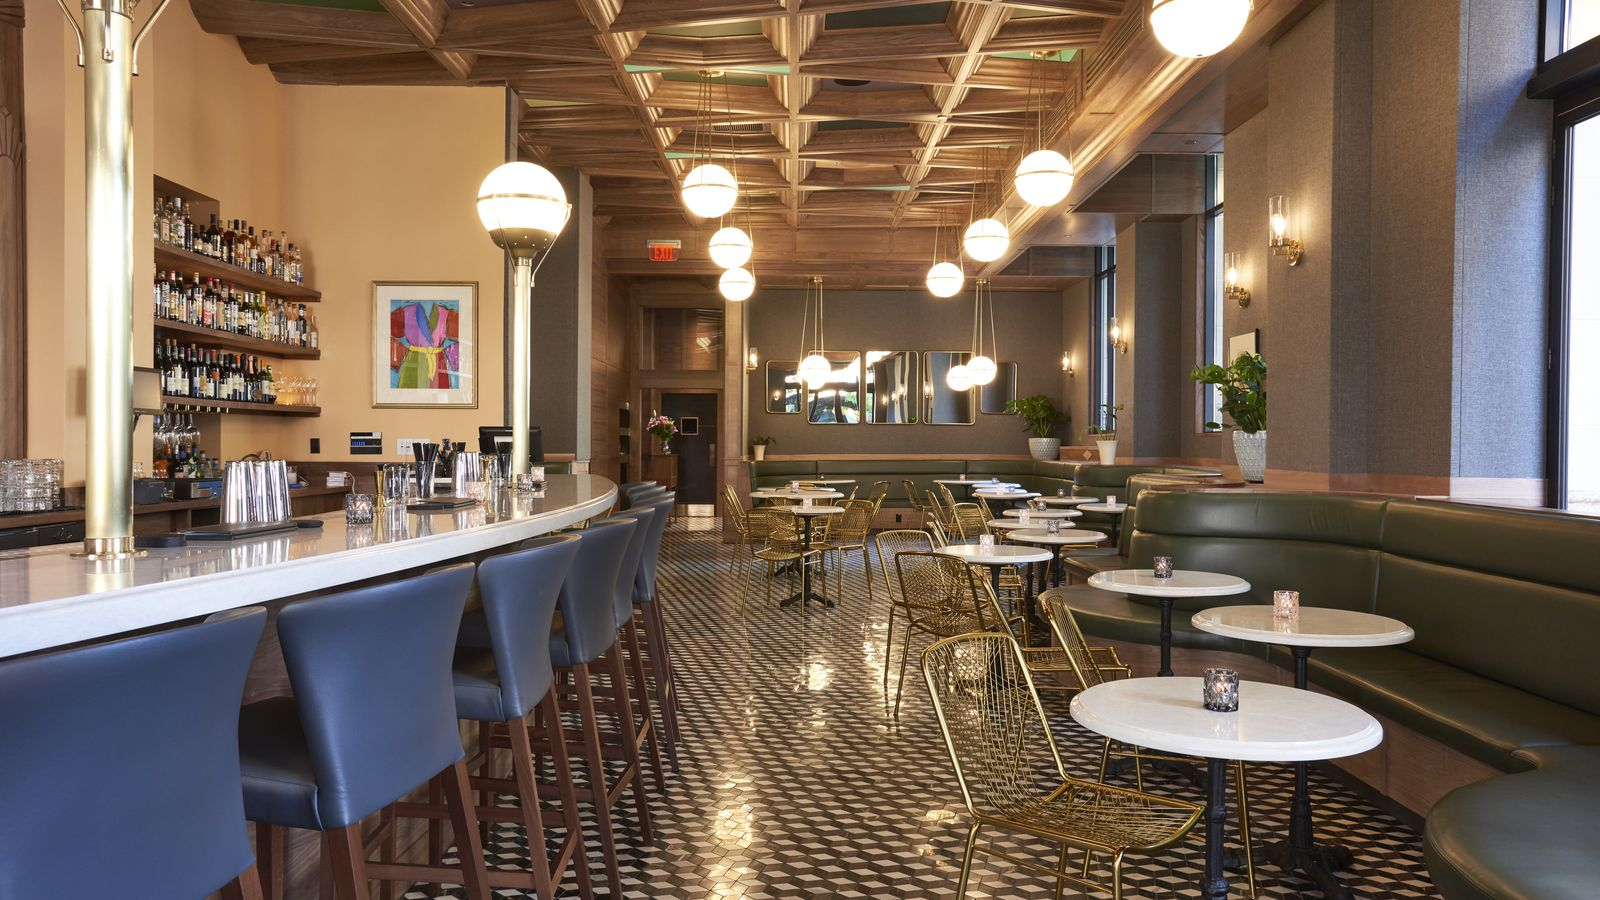 Tour The Swank New Opal Bar In Dossier Hotel photo